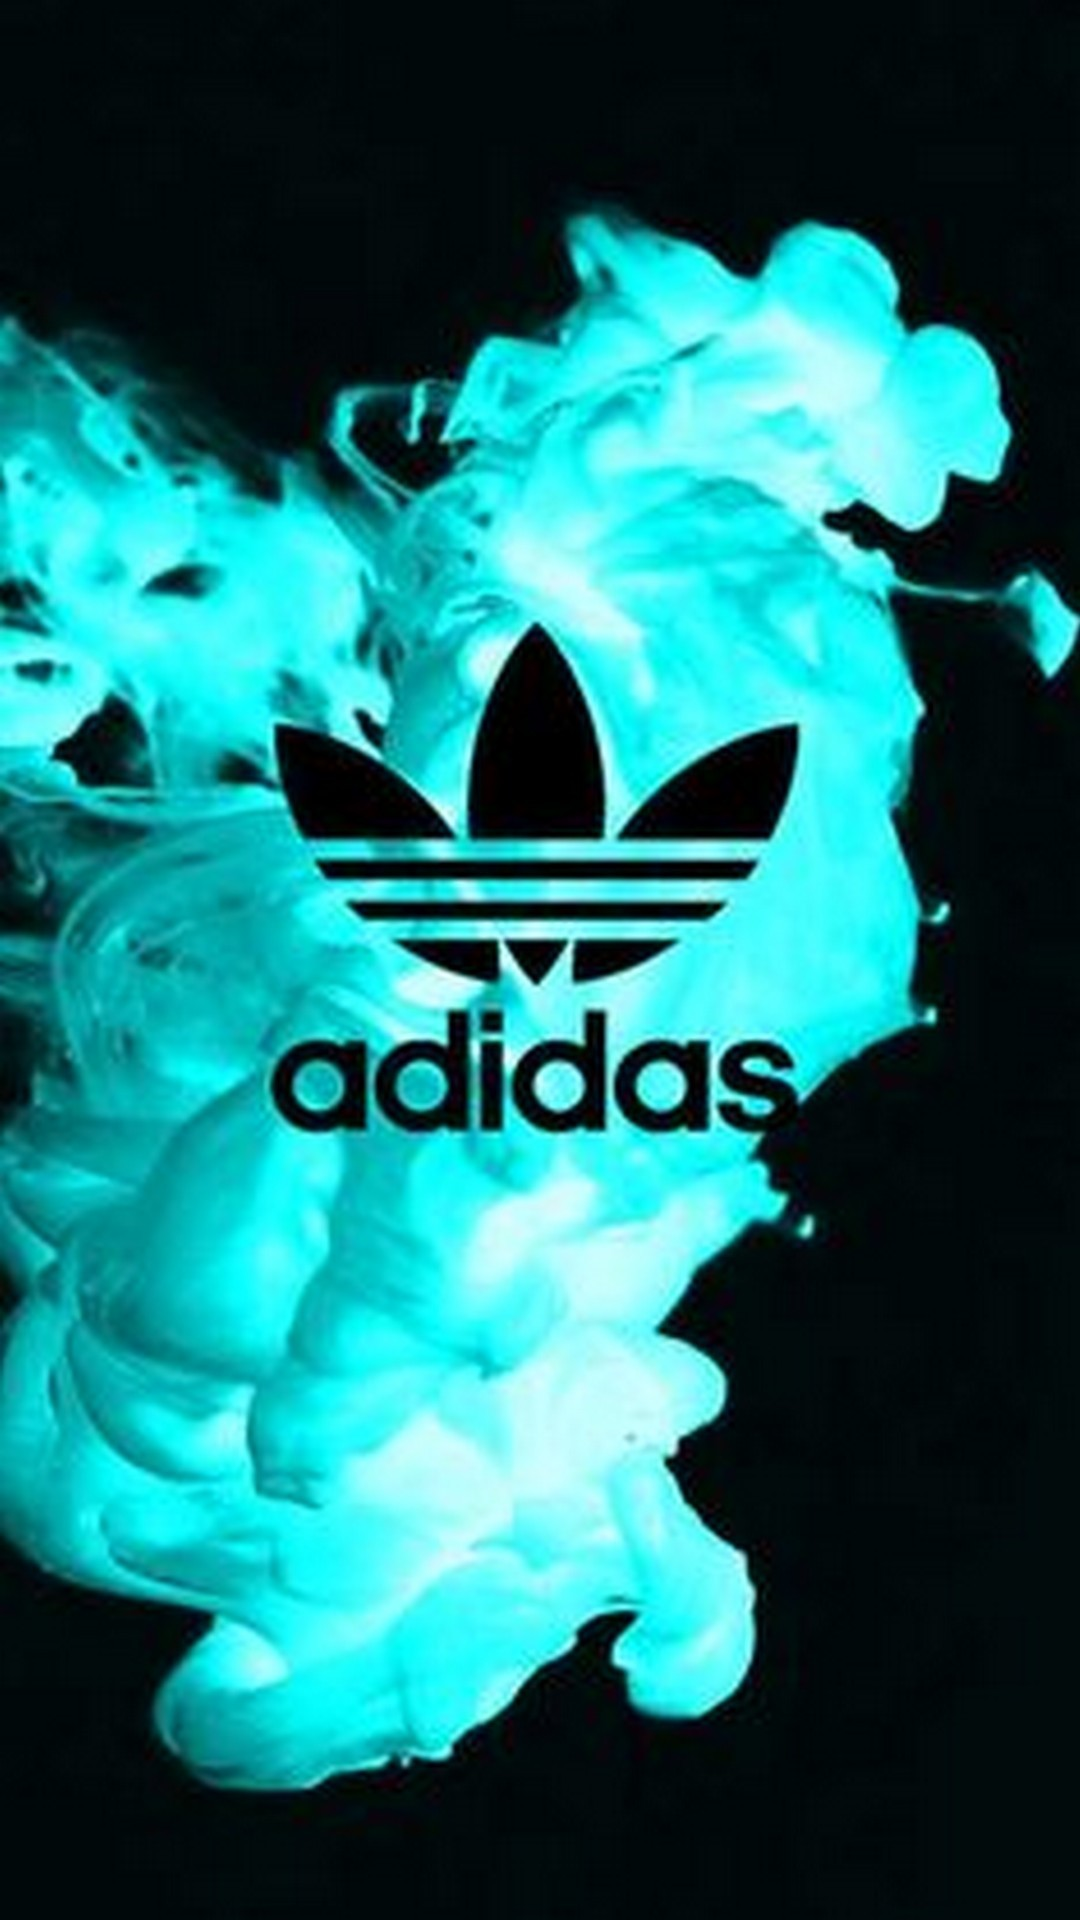 Adidas Wallpapers Hd Wallpaper Collections 4kwallpaper Wiki